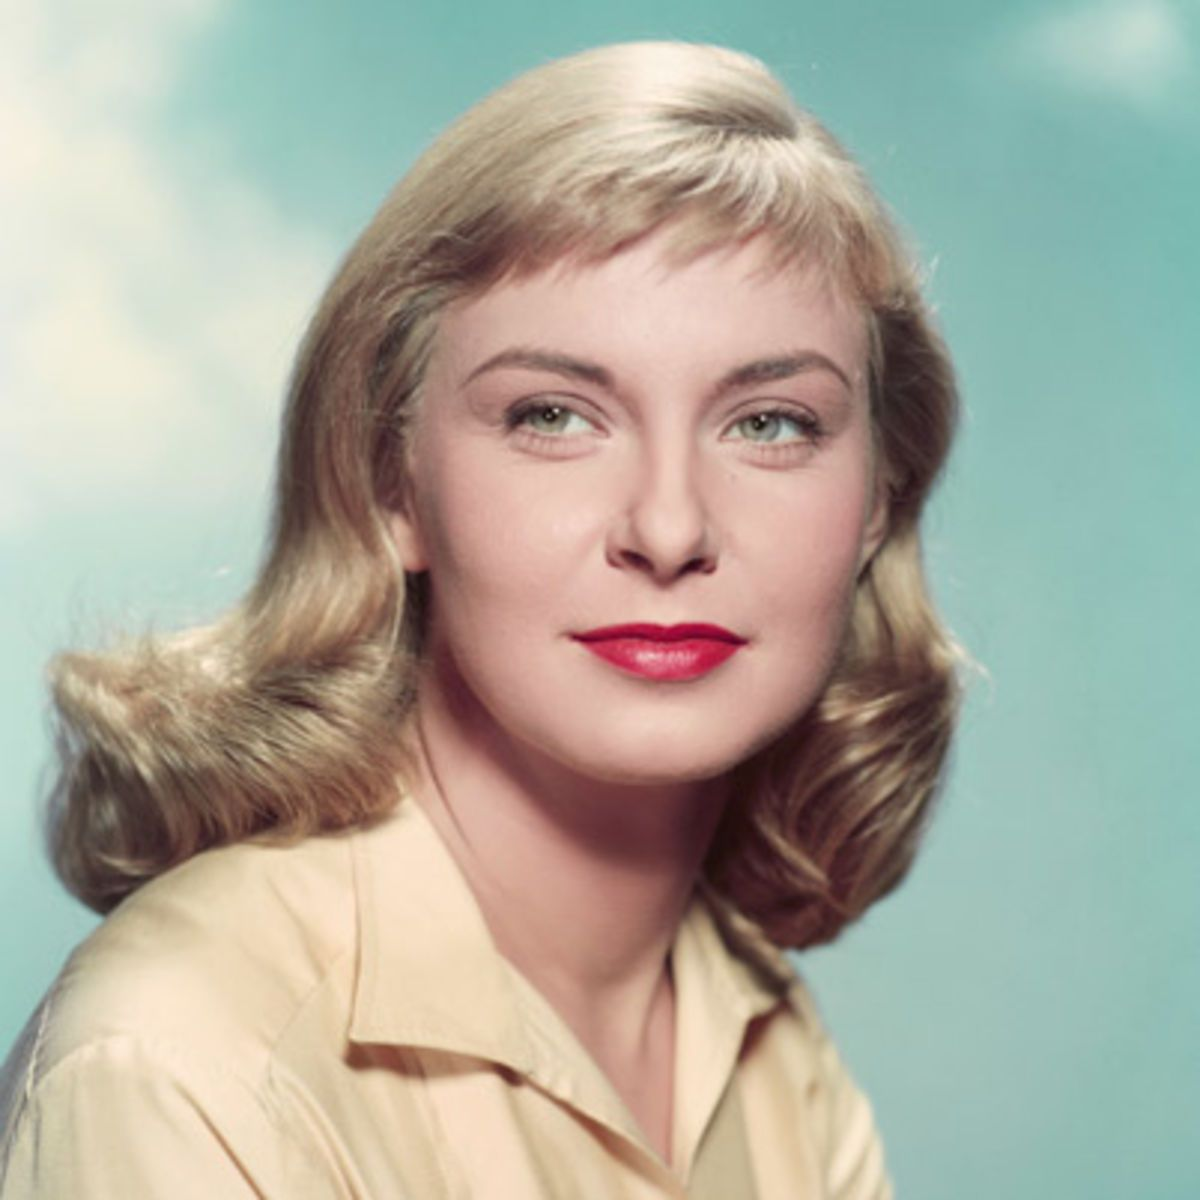 Joanne Woodward is an award-winning American film and TV actress and is the widow